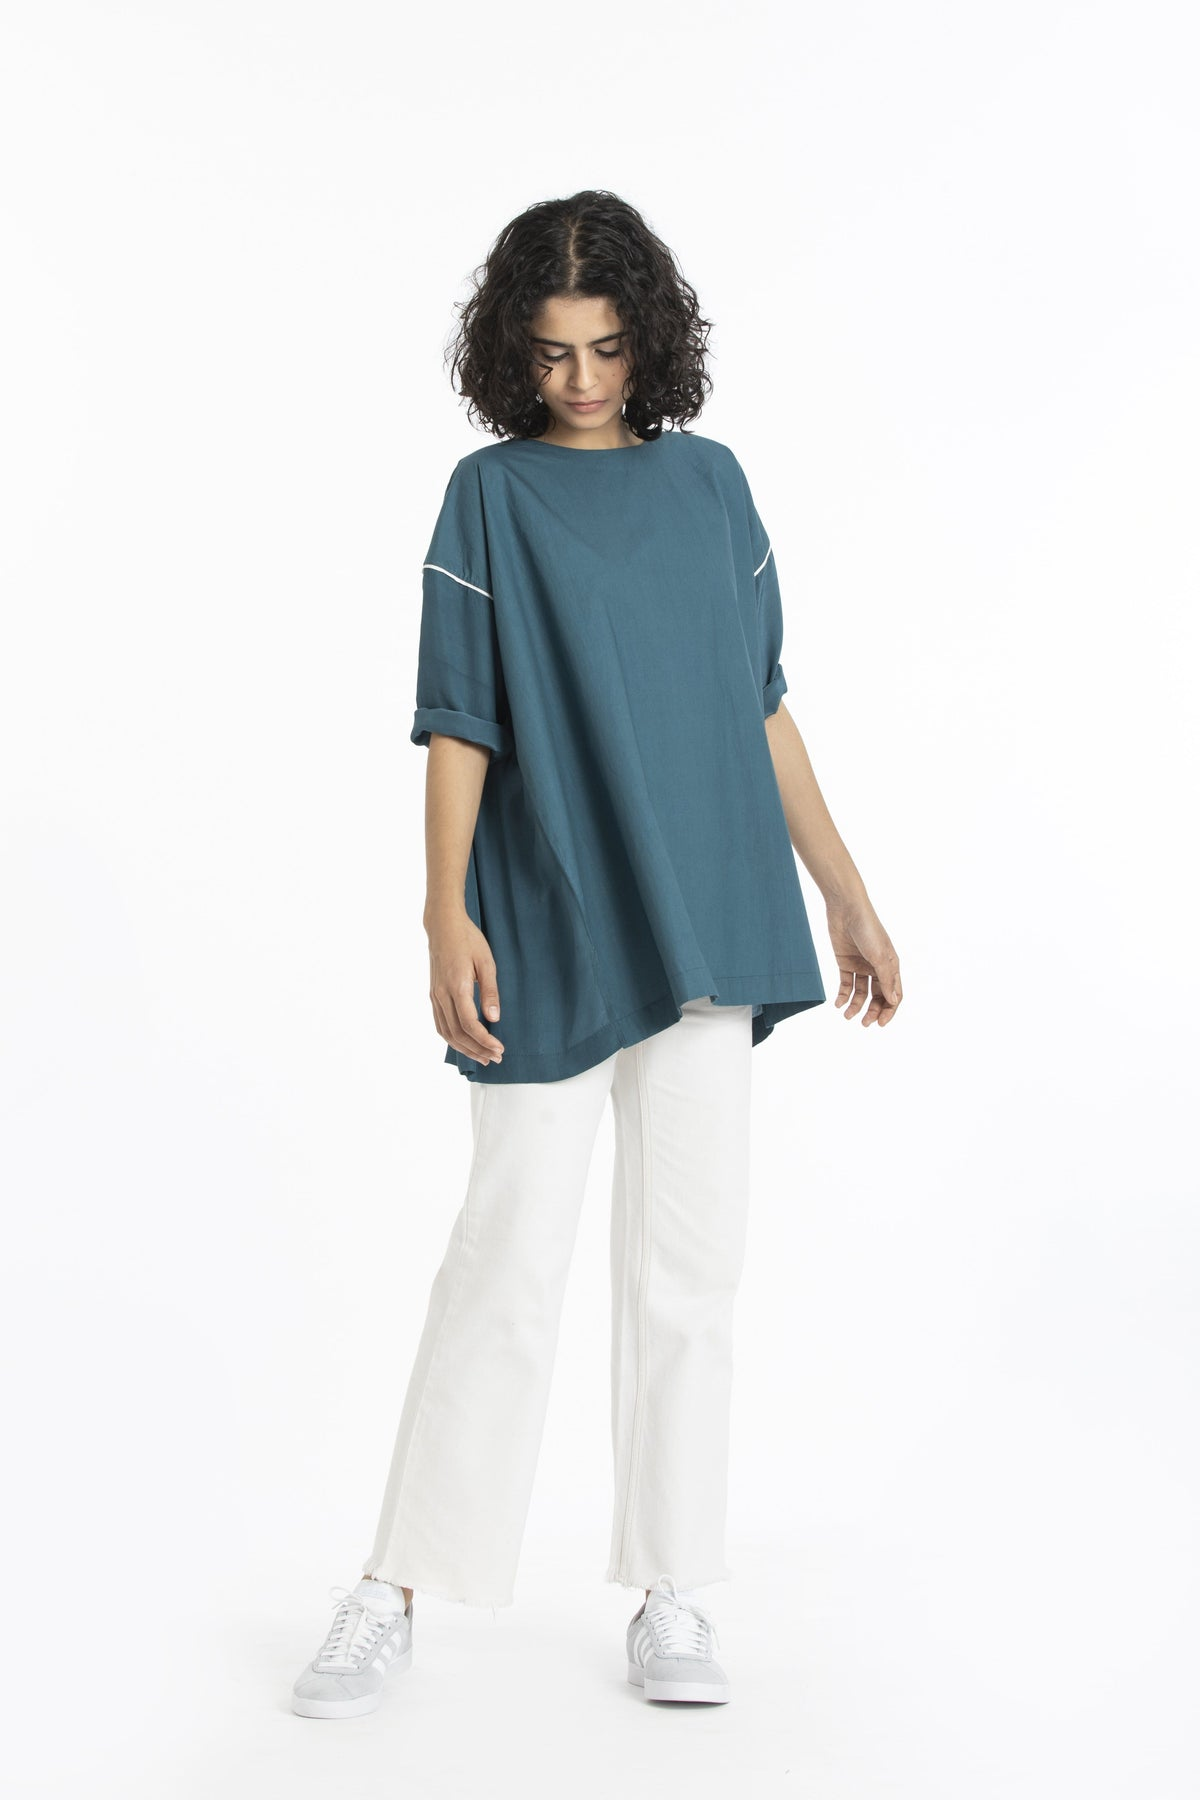 Three Shirts & Tops Cotton poplin teal top